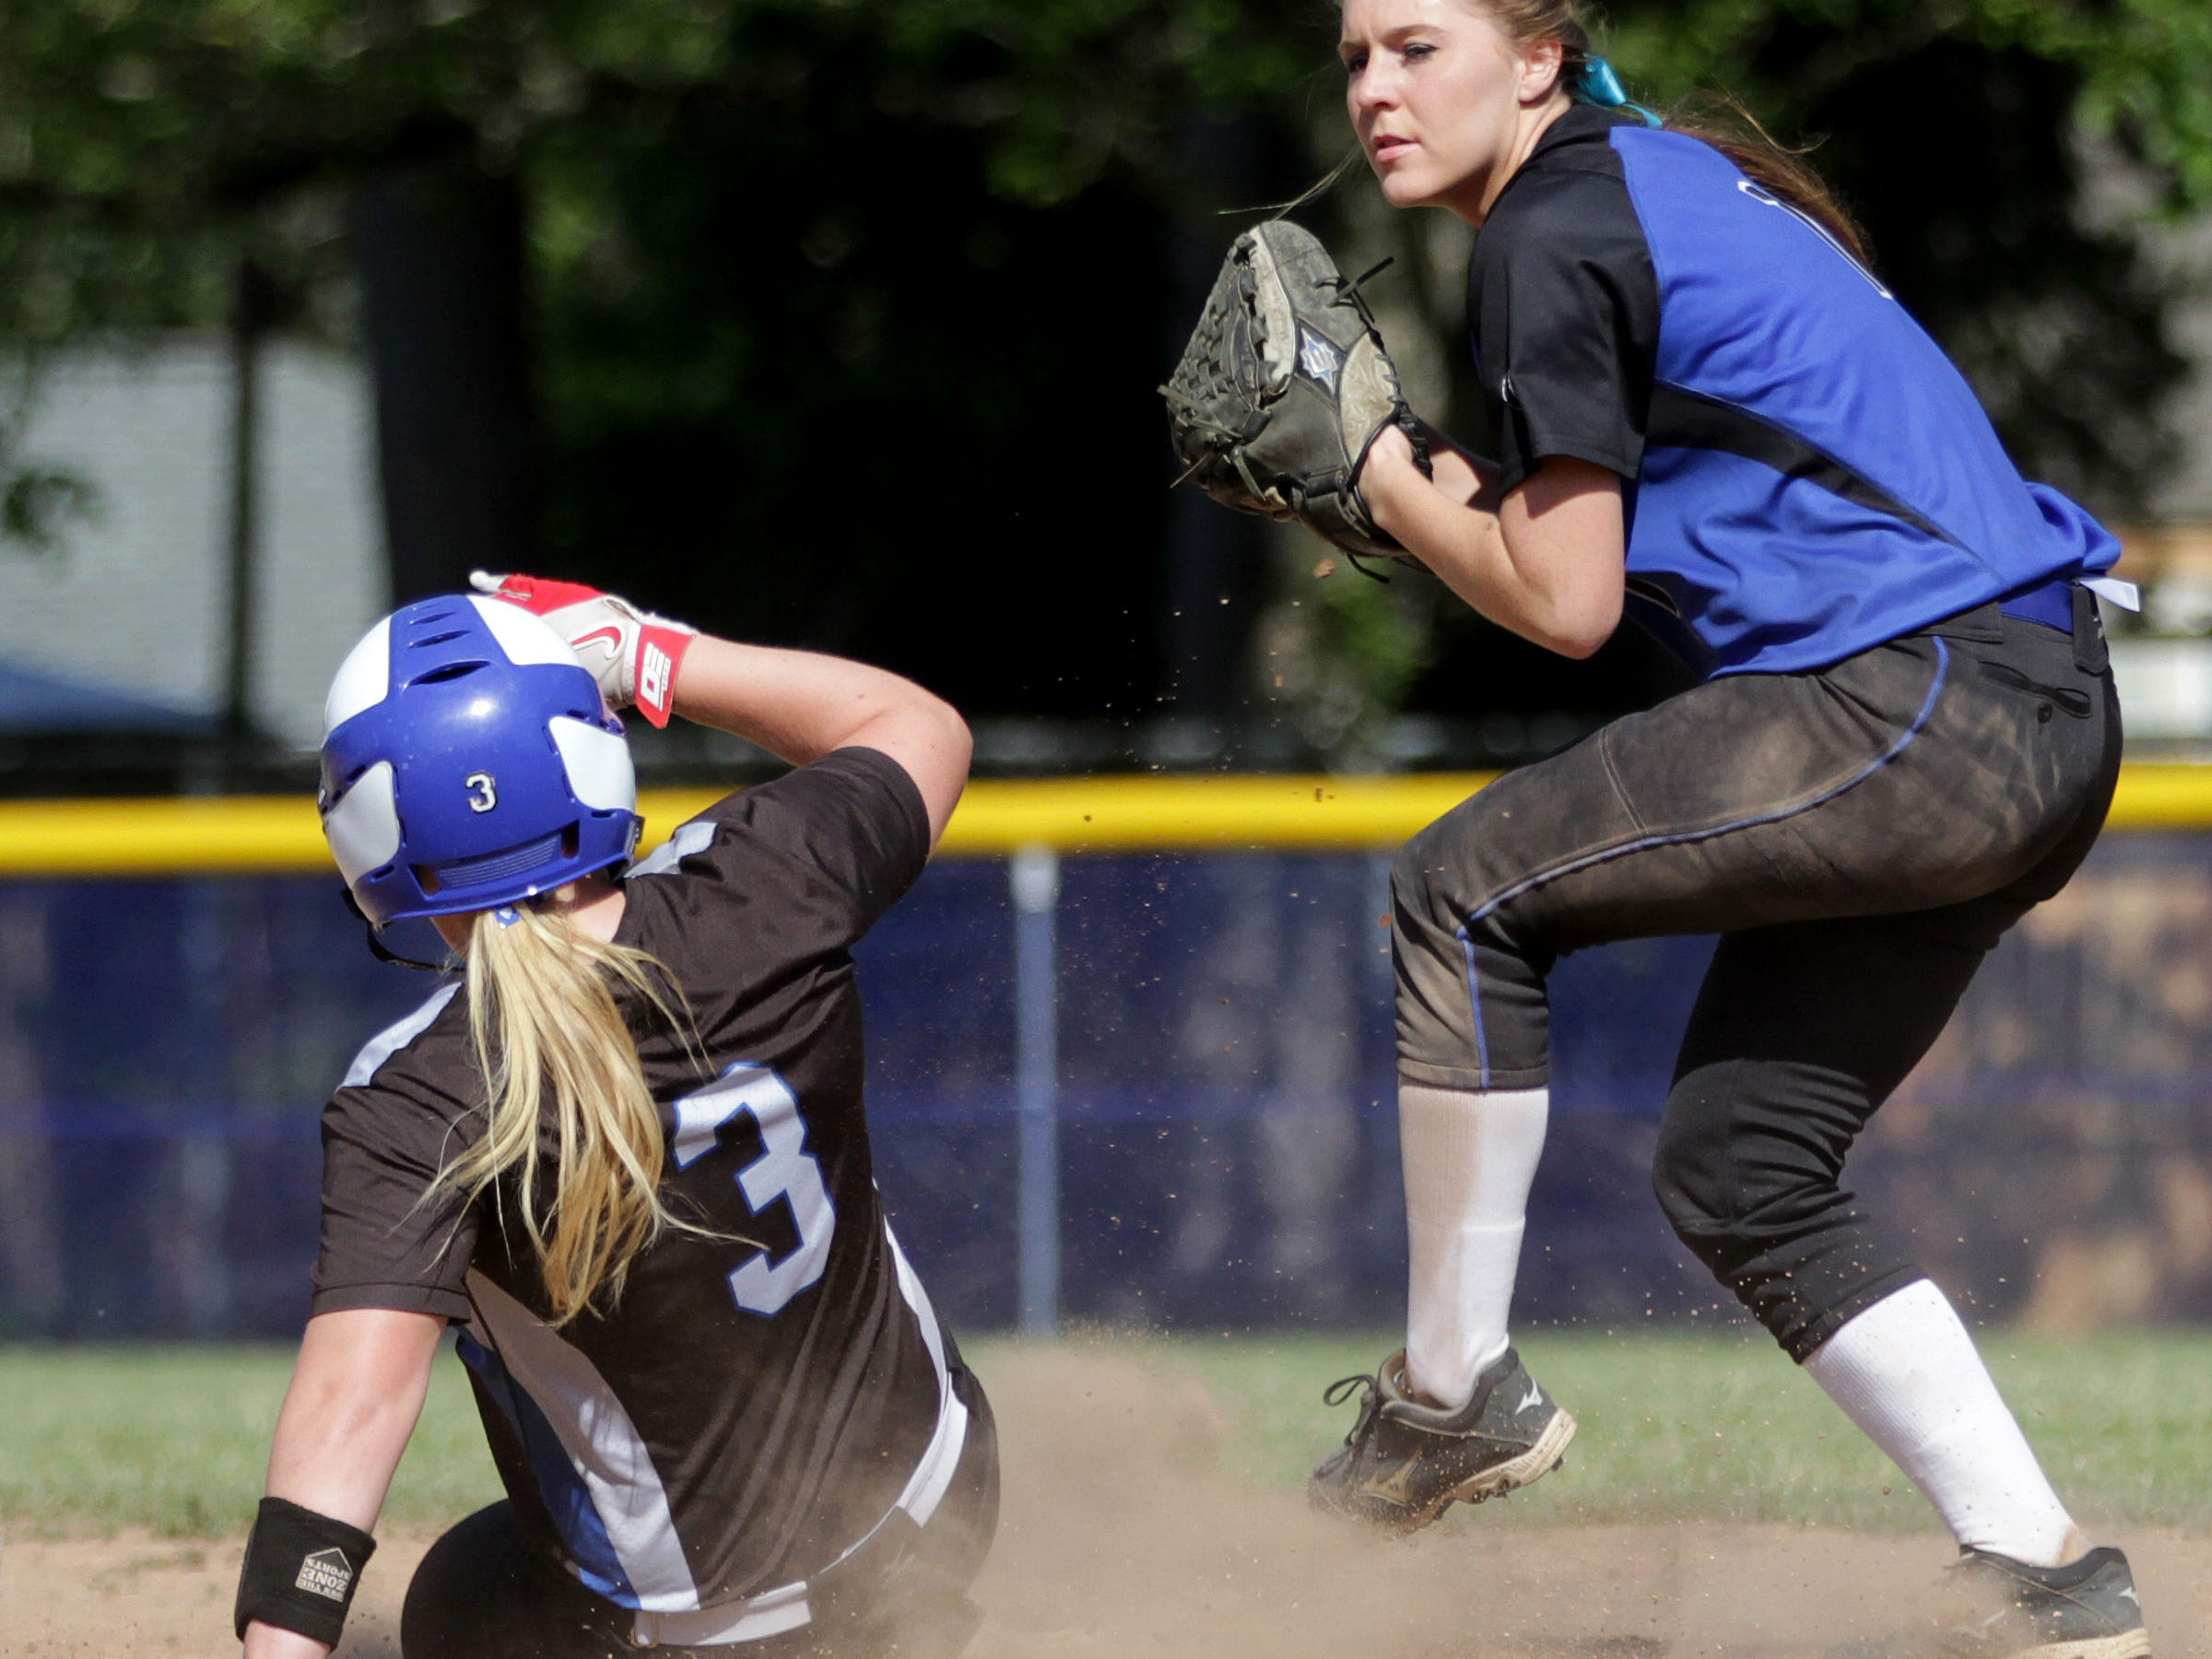 Gresham's Maddy Lindhorst (1) looks to pass to first after getting McNary's Madisen Oliver (3) out at second in the Gresham vs. McNary softball game, in the first round of the OSAA class 6A state playoffs, at McNary High School in Keizer on Monday, May 25, 2015. McNary won the game 11-7.